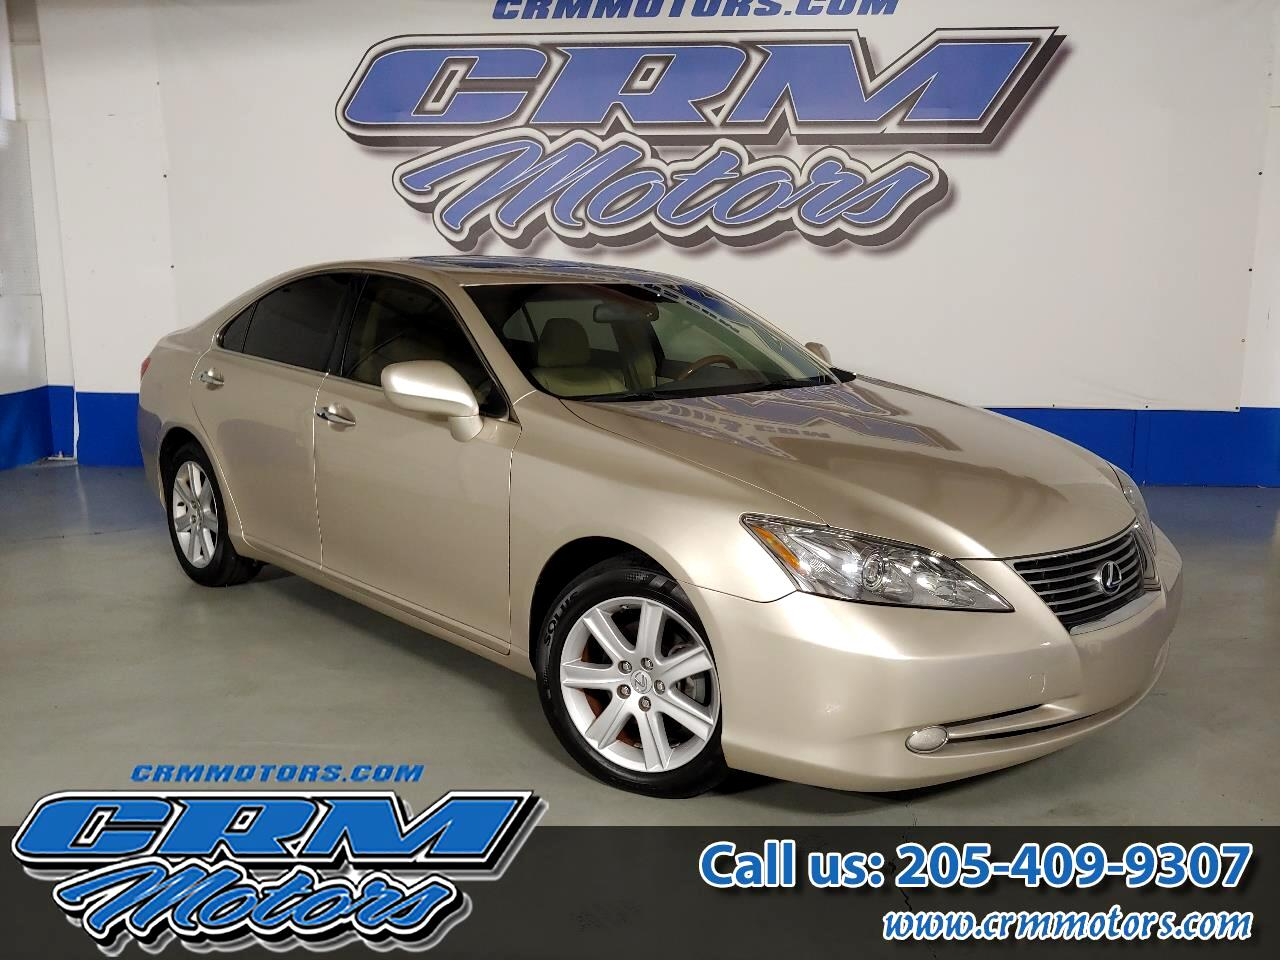 2007 Lexus ES 350 4DR SEDAN LUXURY W/ULTRA PACKAGE!